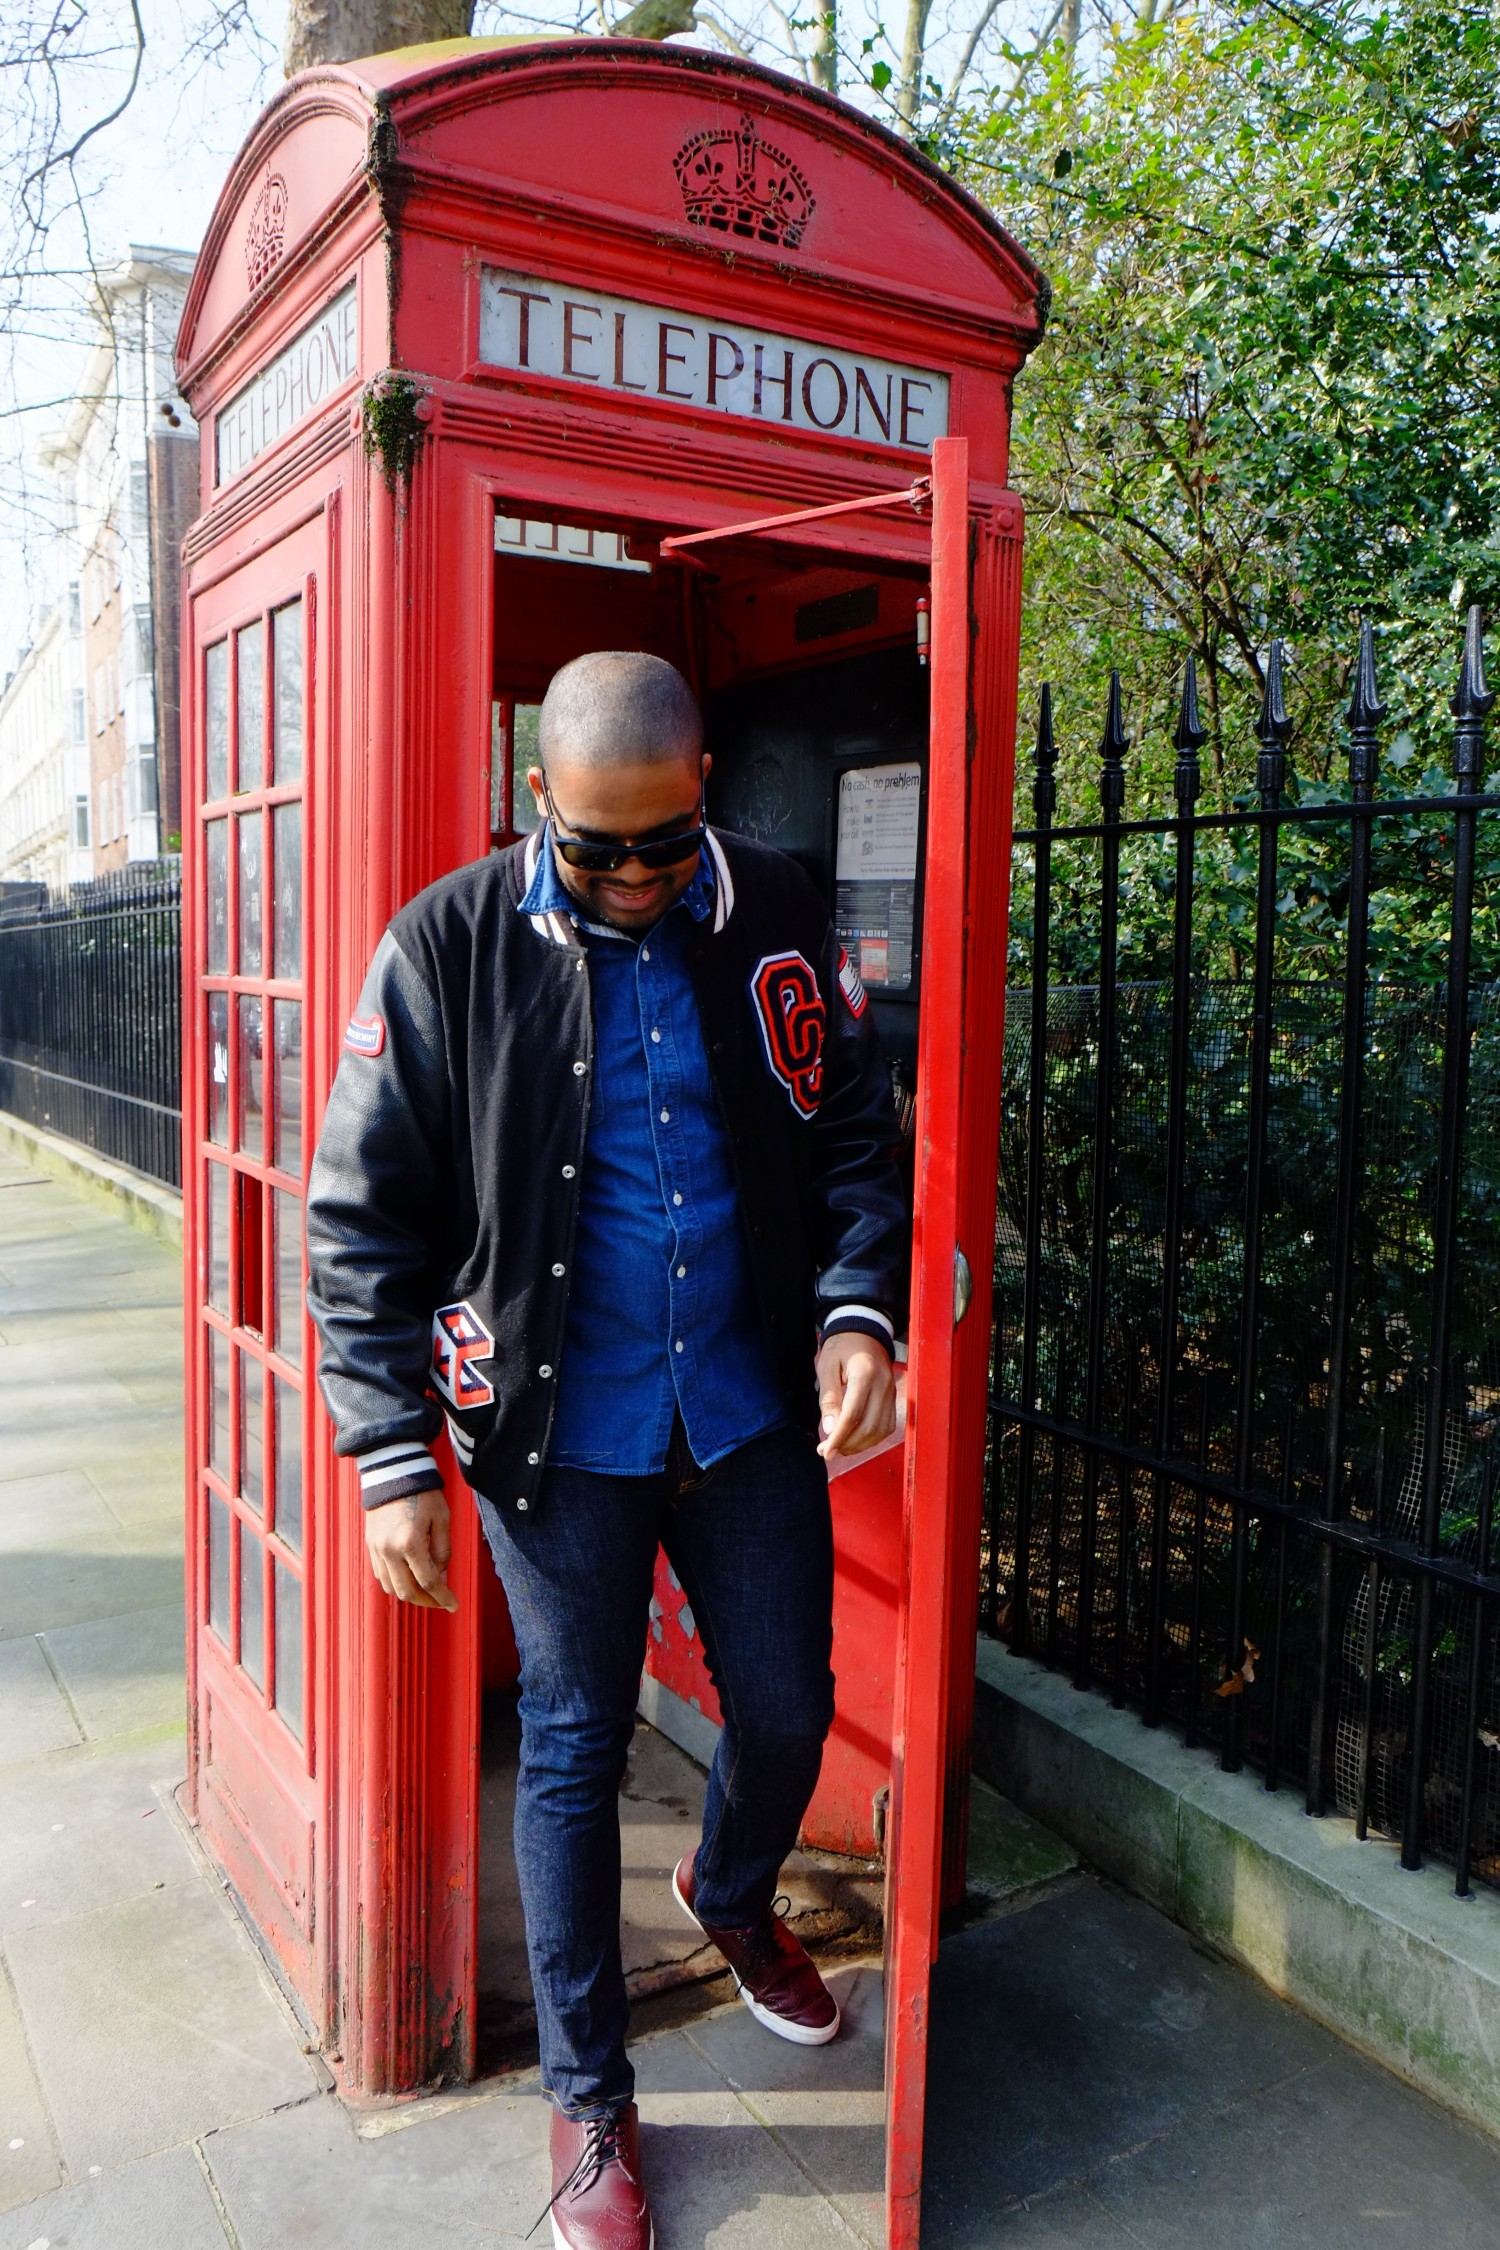 Bucket list London phone box